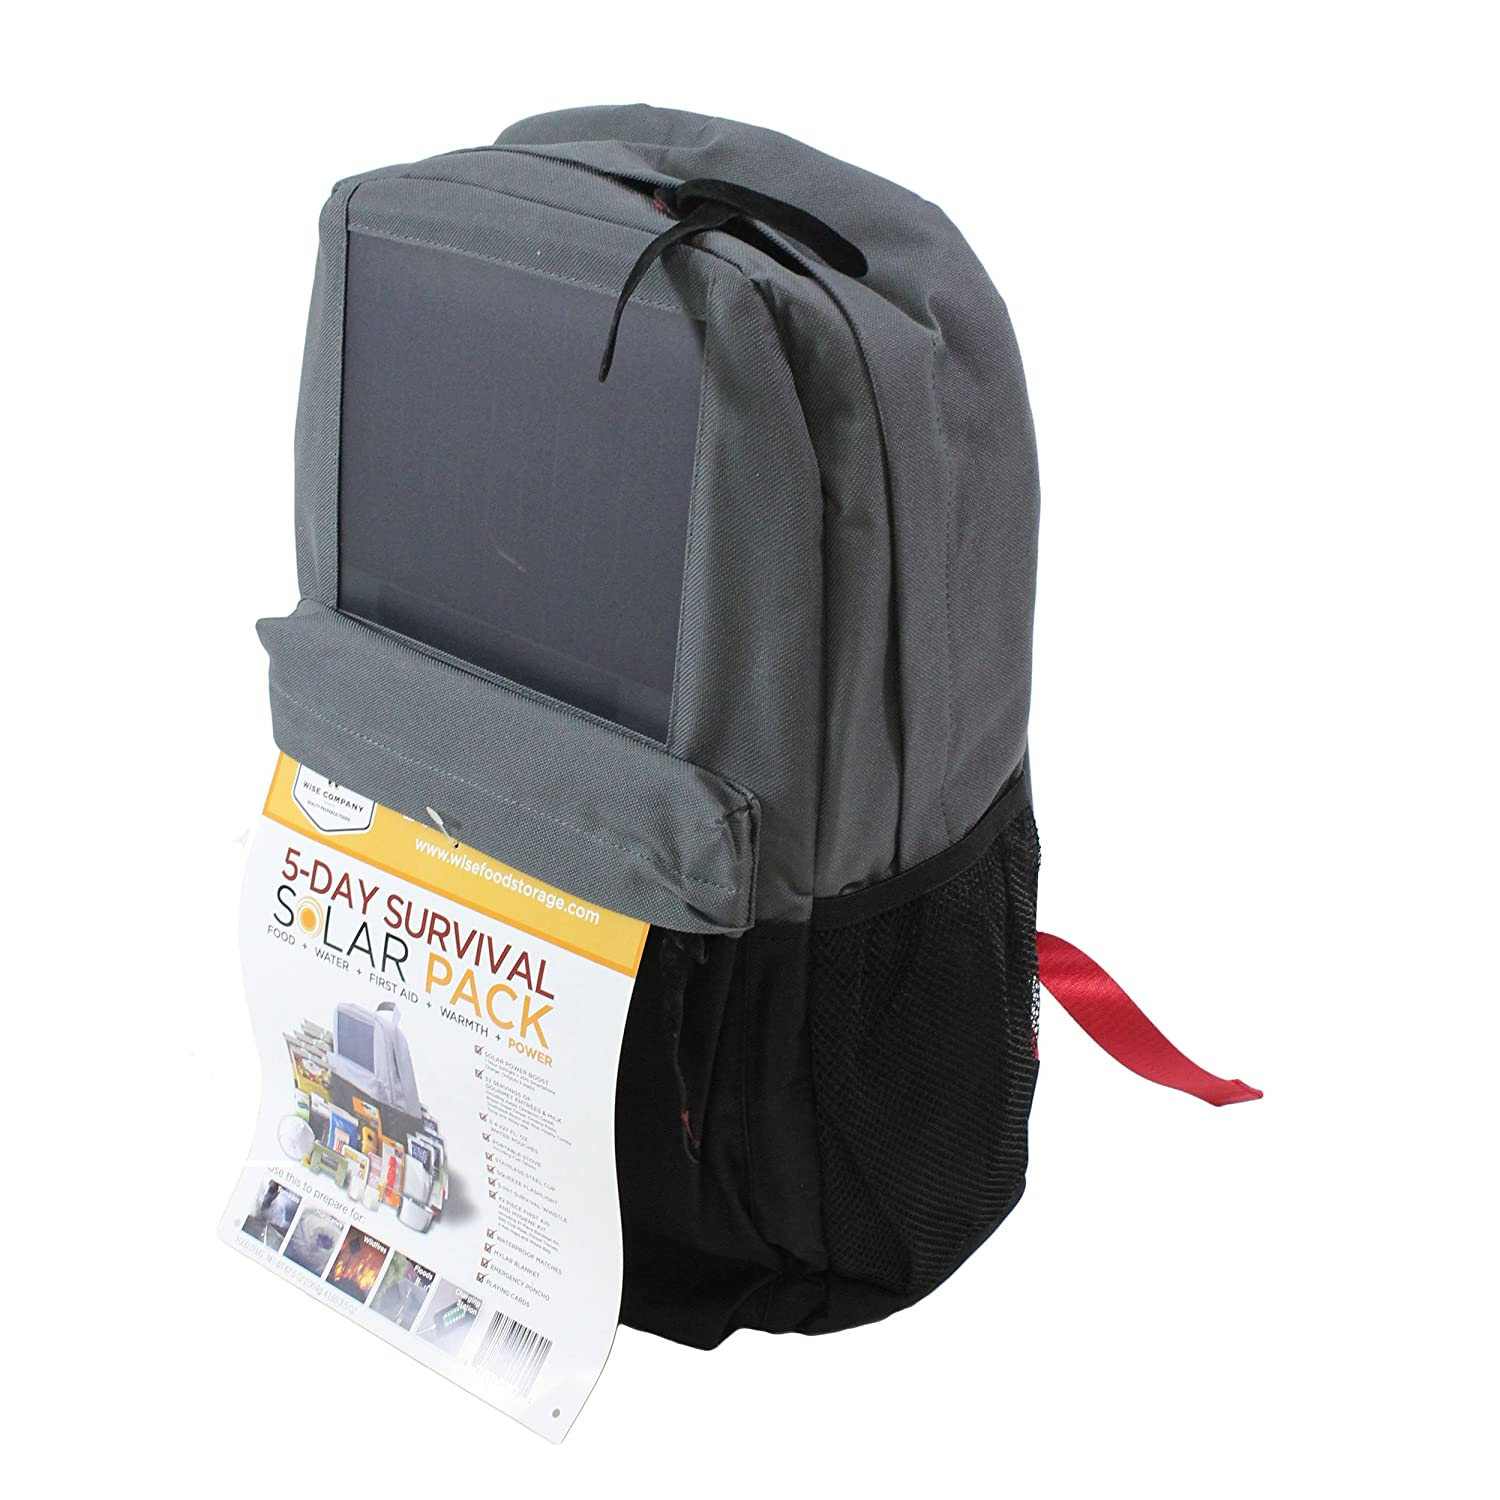 8b29a74f15e2 Wise Foods Survival 5 Day Solar Backpack